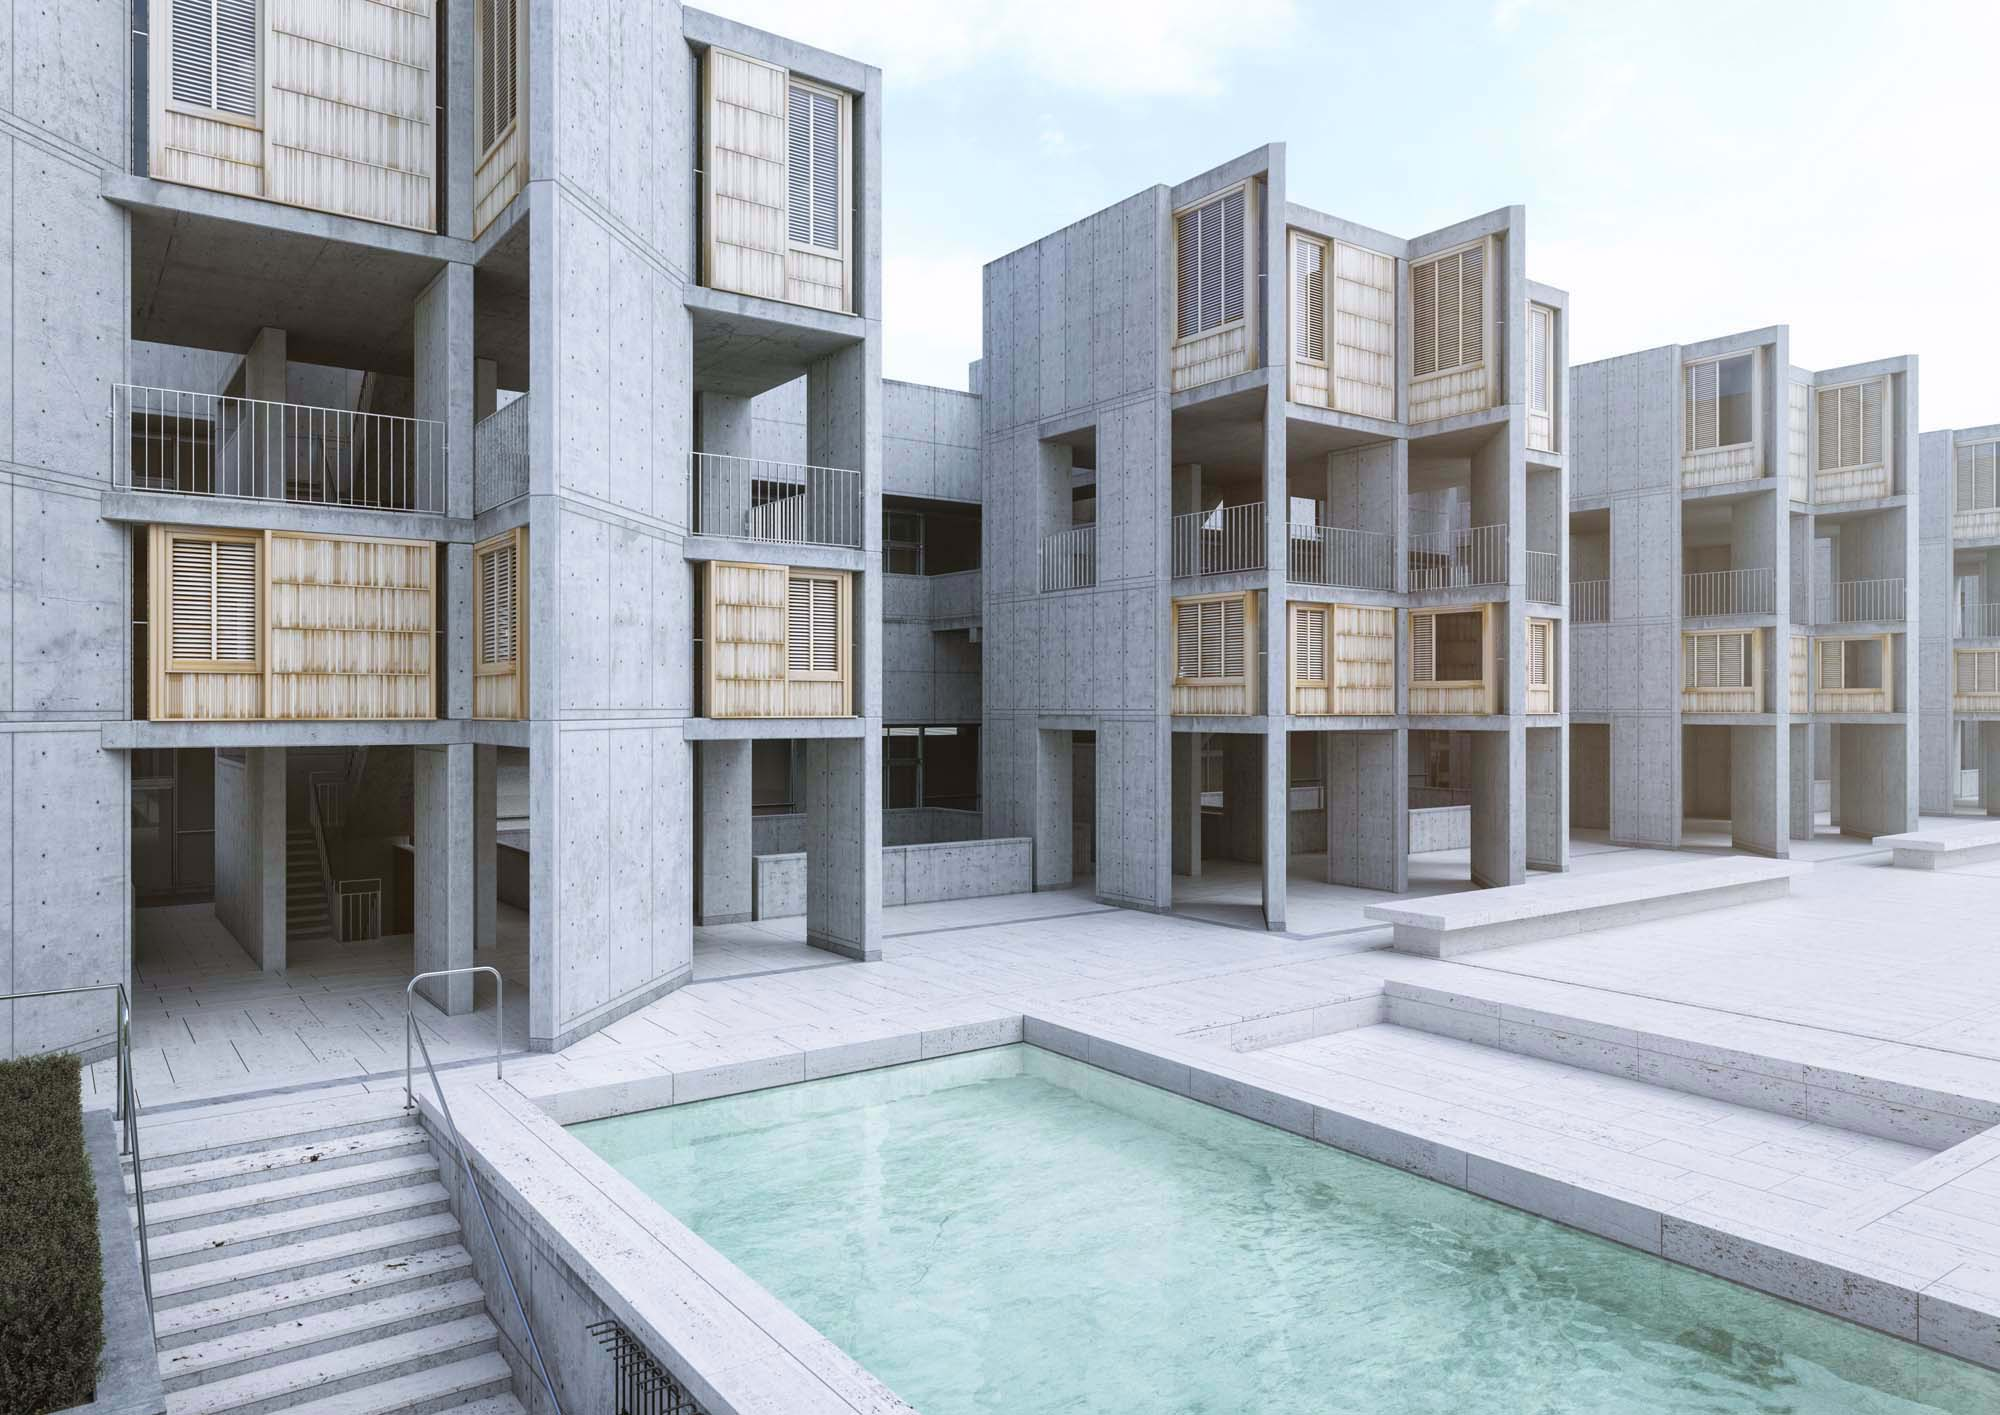 louis kahn salk institute